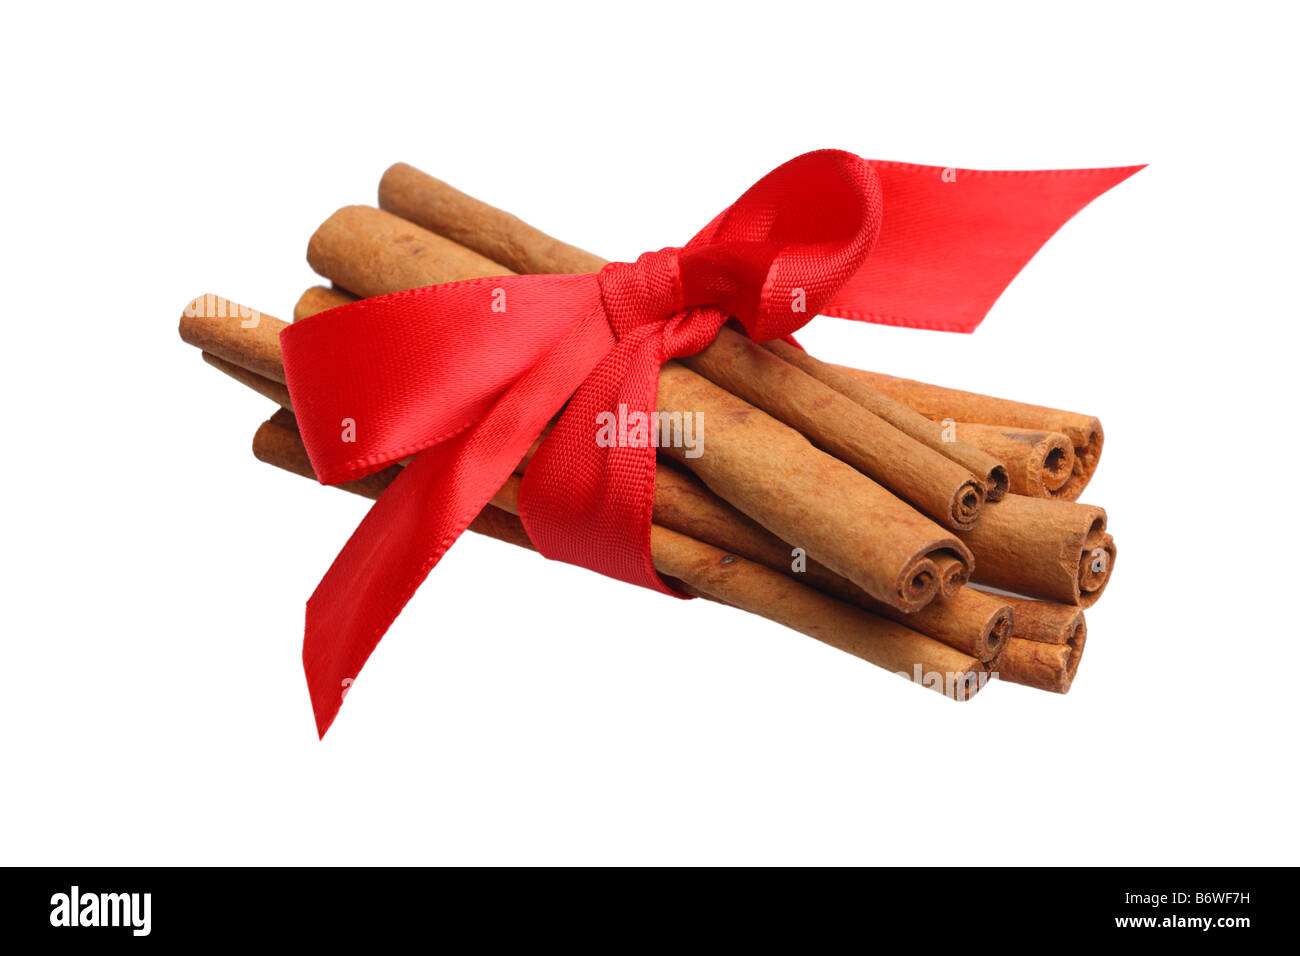 Cinnamon sticks tied with red ribbon cut out isolated on white background - Stock Image